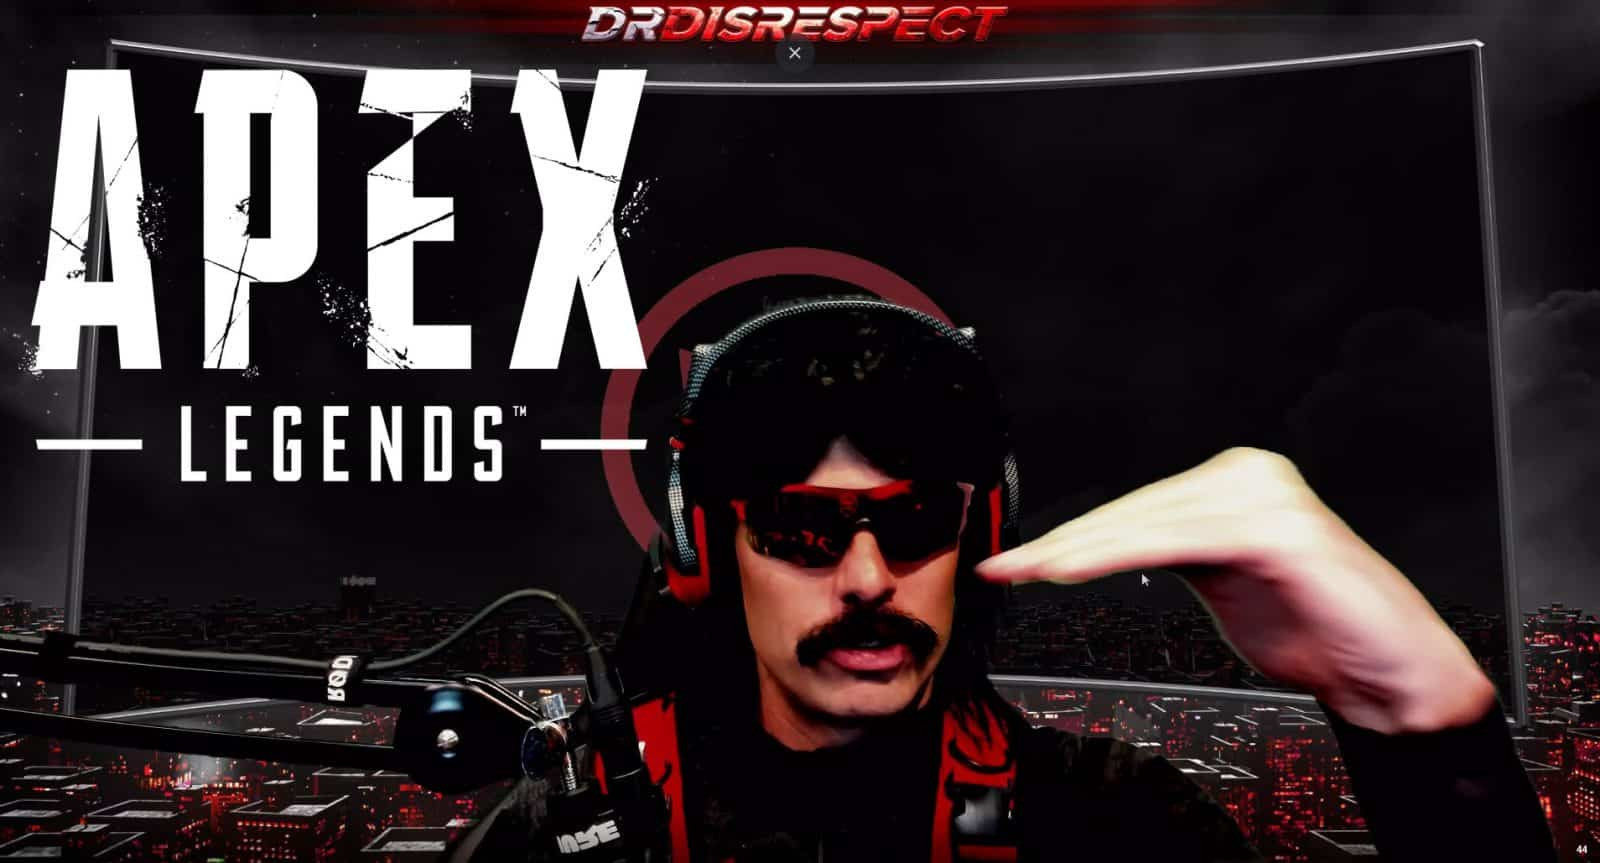 Dr Disrespect Opinion on Apex Legends Season Pass